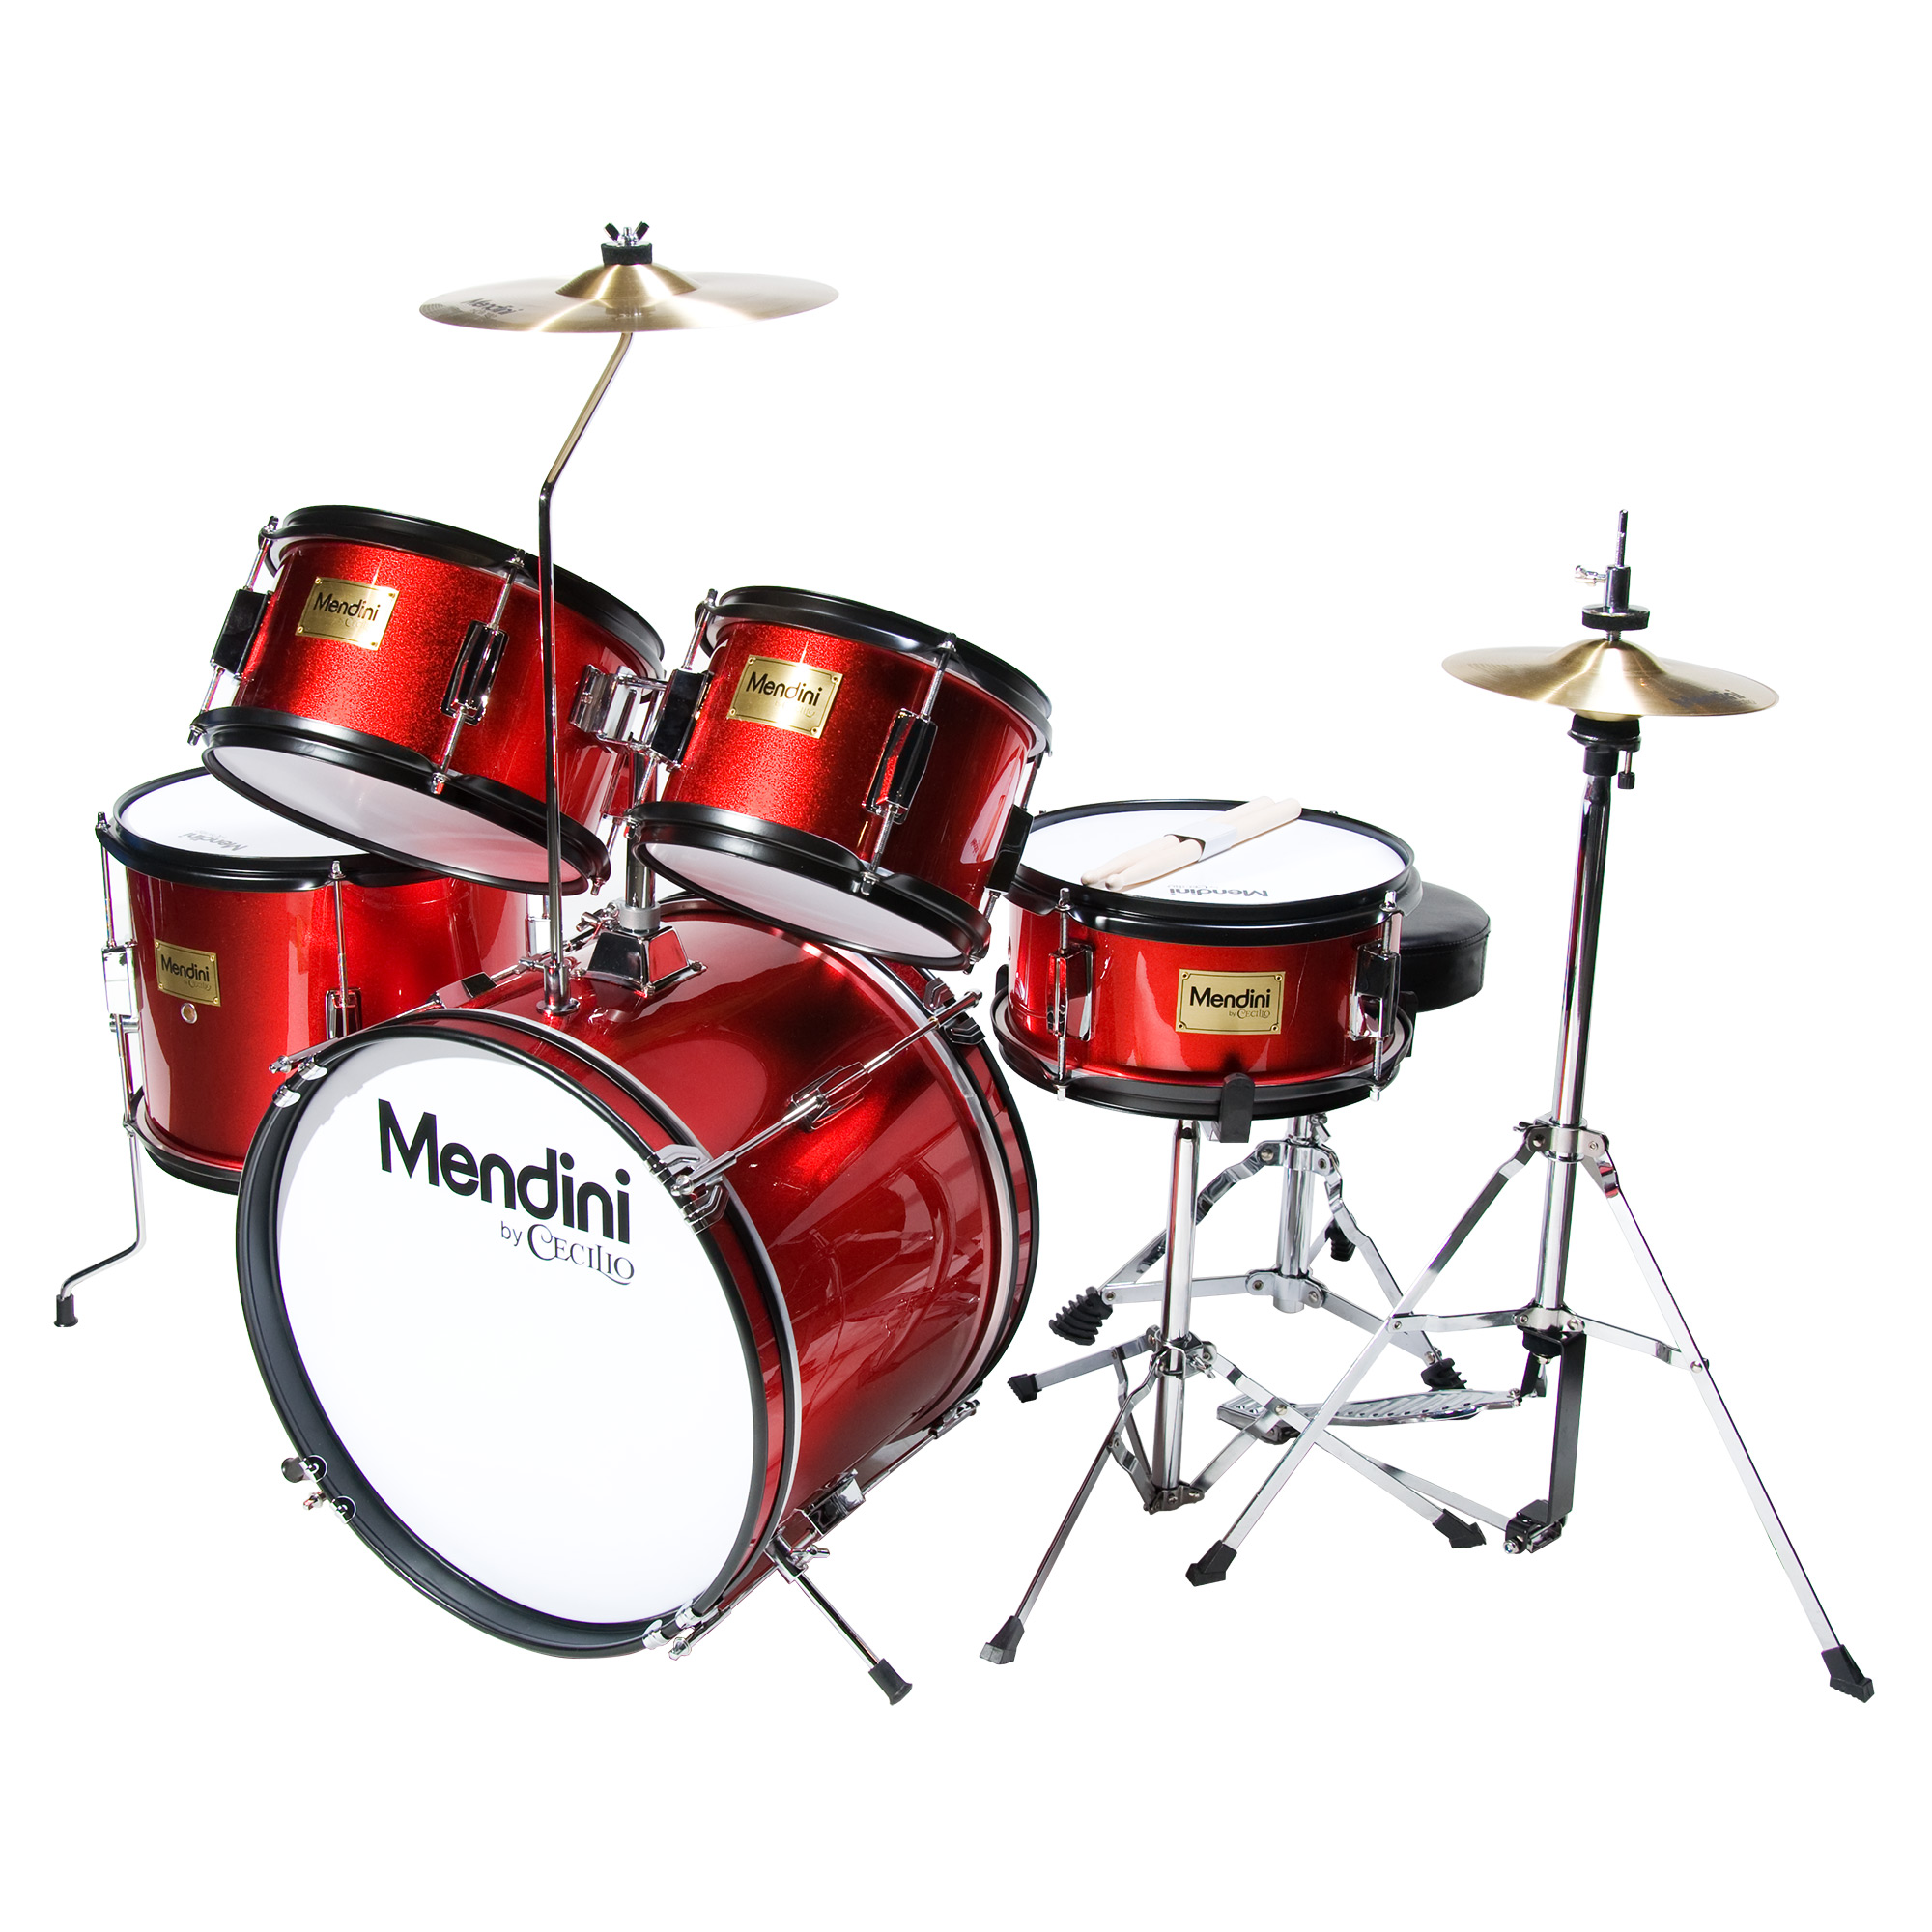 """Mendini by Cecilio 16"""" 5-Piece Complete Kids / Junior Drum Set with Adjustable Throne, Cymbal, Pedal & Drumsticks, Metallic Bright Red, MJDS-5-BR"""